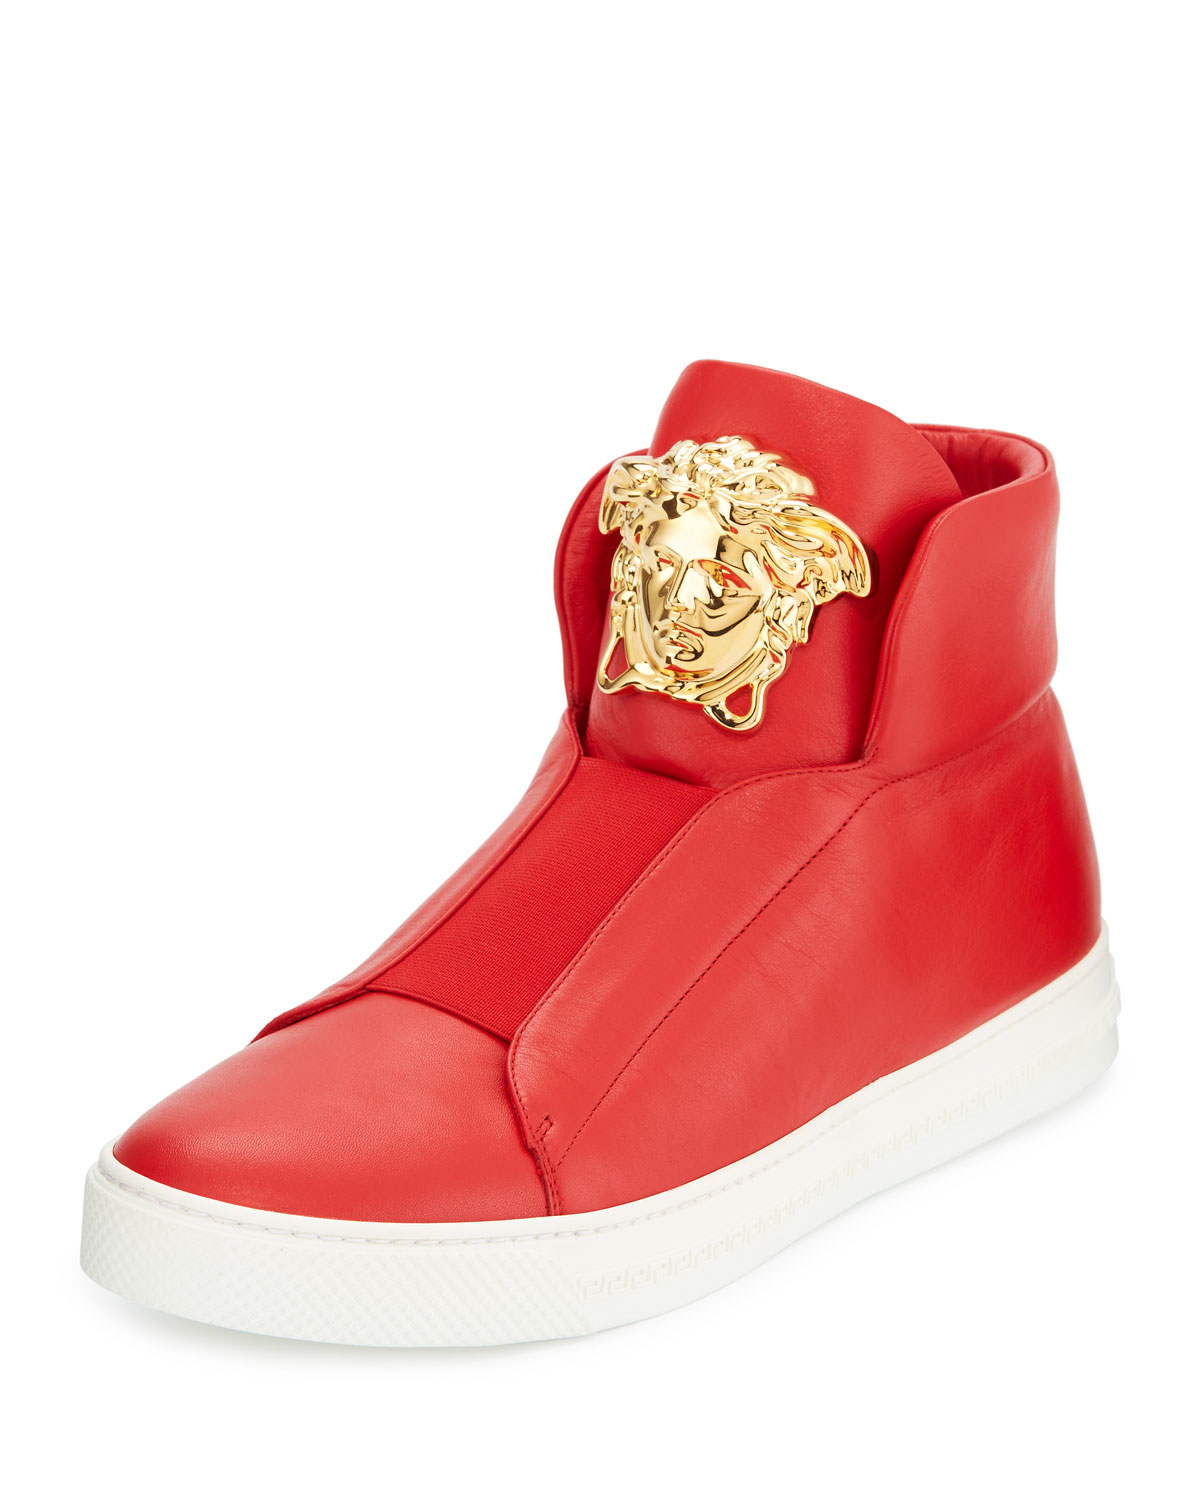 Versace Palazzo Idol Leather High-top Sneaker in Red | Lyst